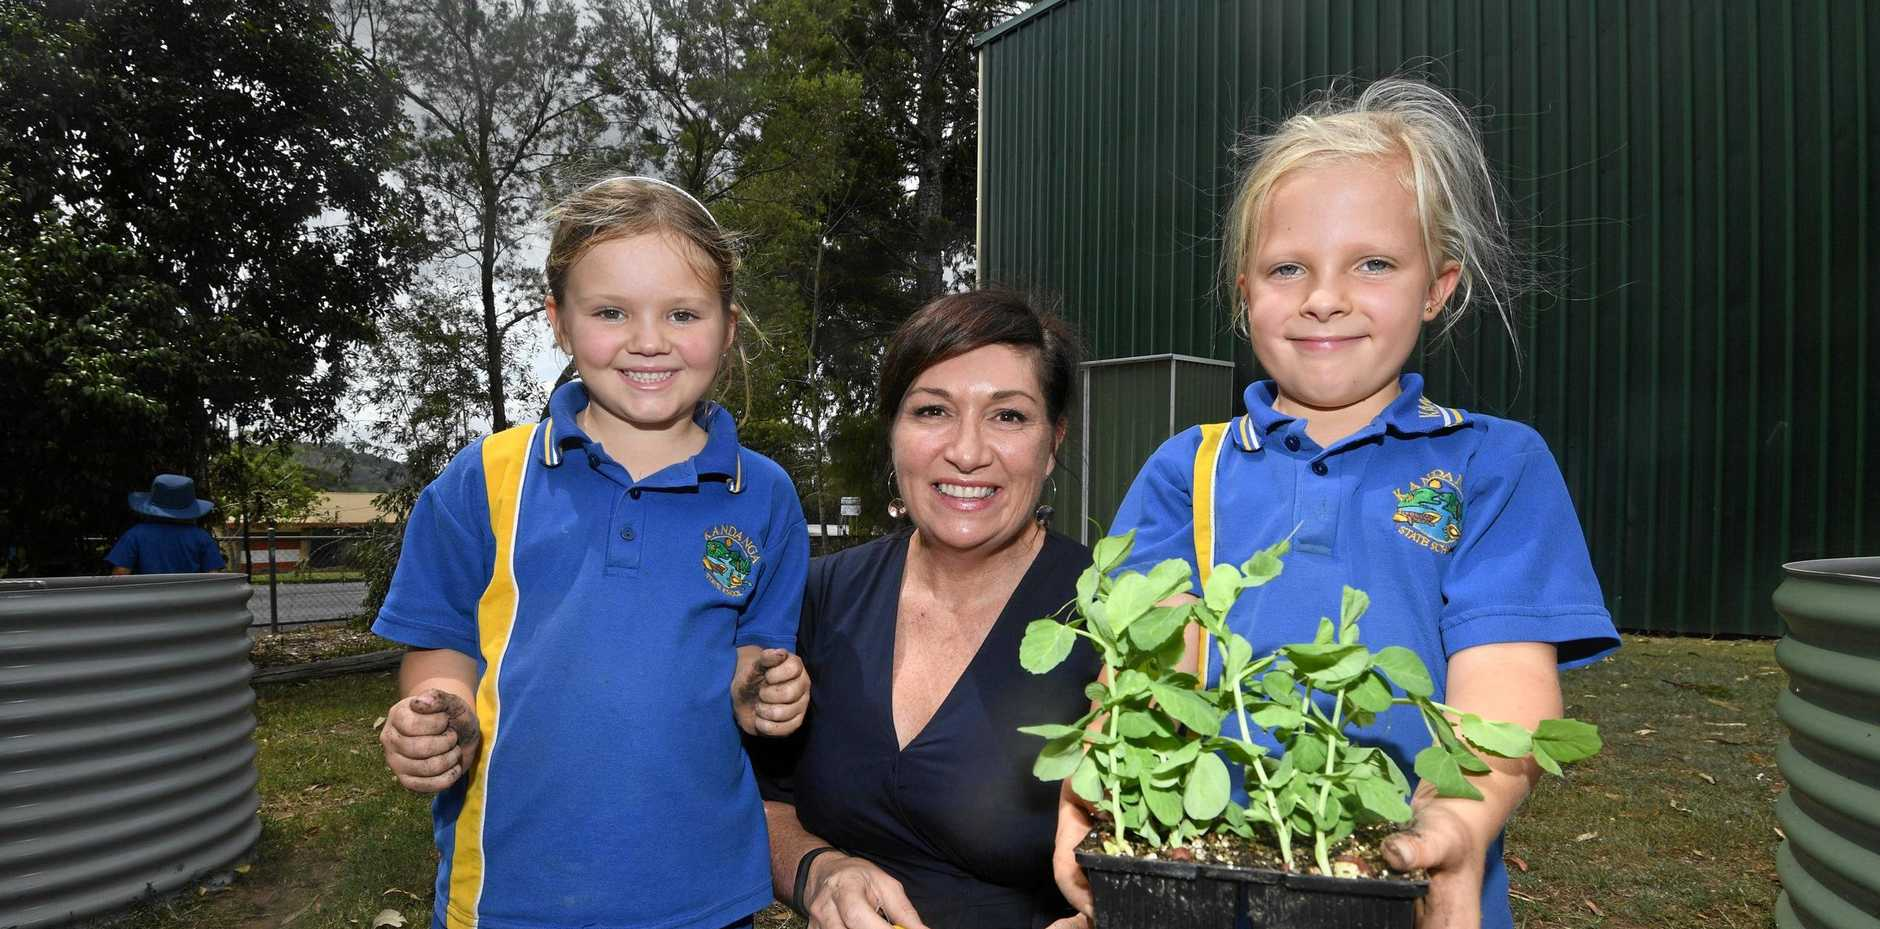 TAKING ACTION: Queensland Environment Minister Leanne Enoch with Kandanga State School students Makayla Ogan and Mia Garrett. Mrs Enoch spent an hour at the school helping students with their vegetable garden and talking about the importance of climate change.